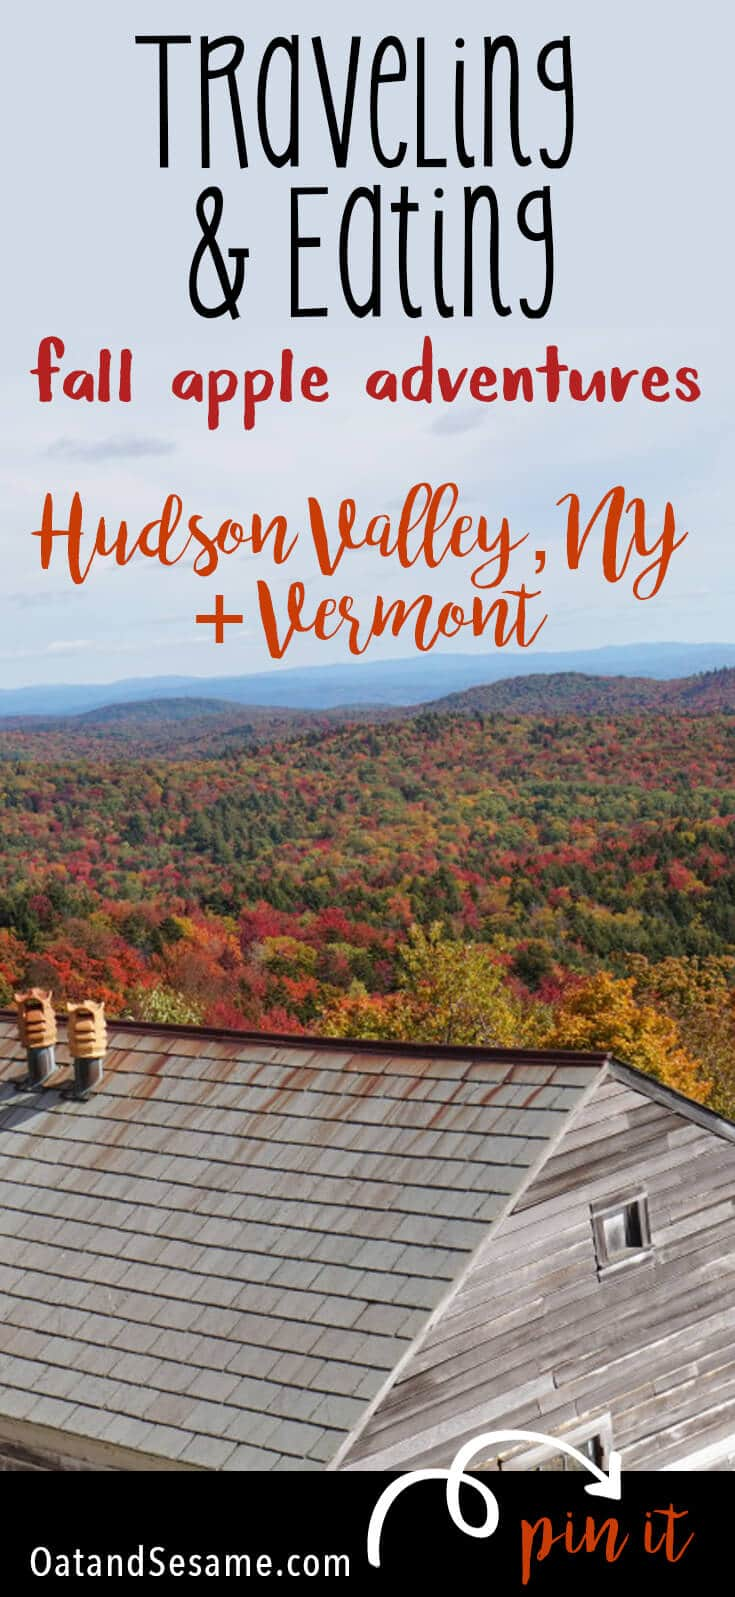 The best apple picking adventures in the Hudson Valley + Vermont! So many heirlooms! Including a healthy recipe for delicious Apple Walnut Cookies! | COOKIES | APPLES | HEIRLOOM | FALL | TRAVEL | Recipe at OatandSesame.com